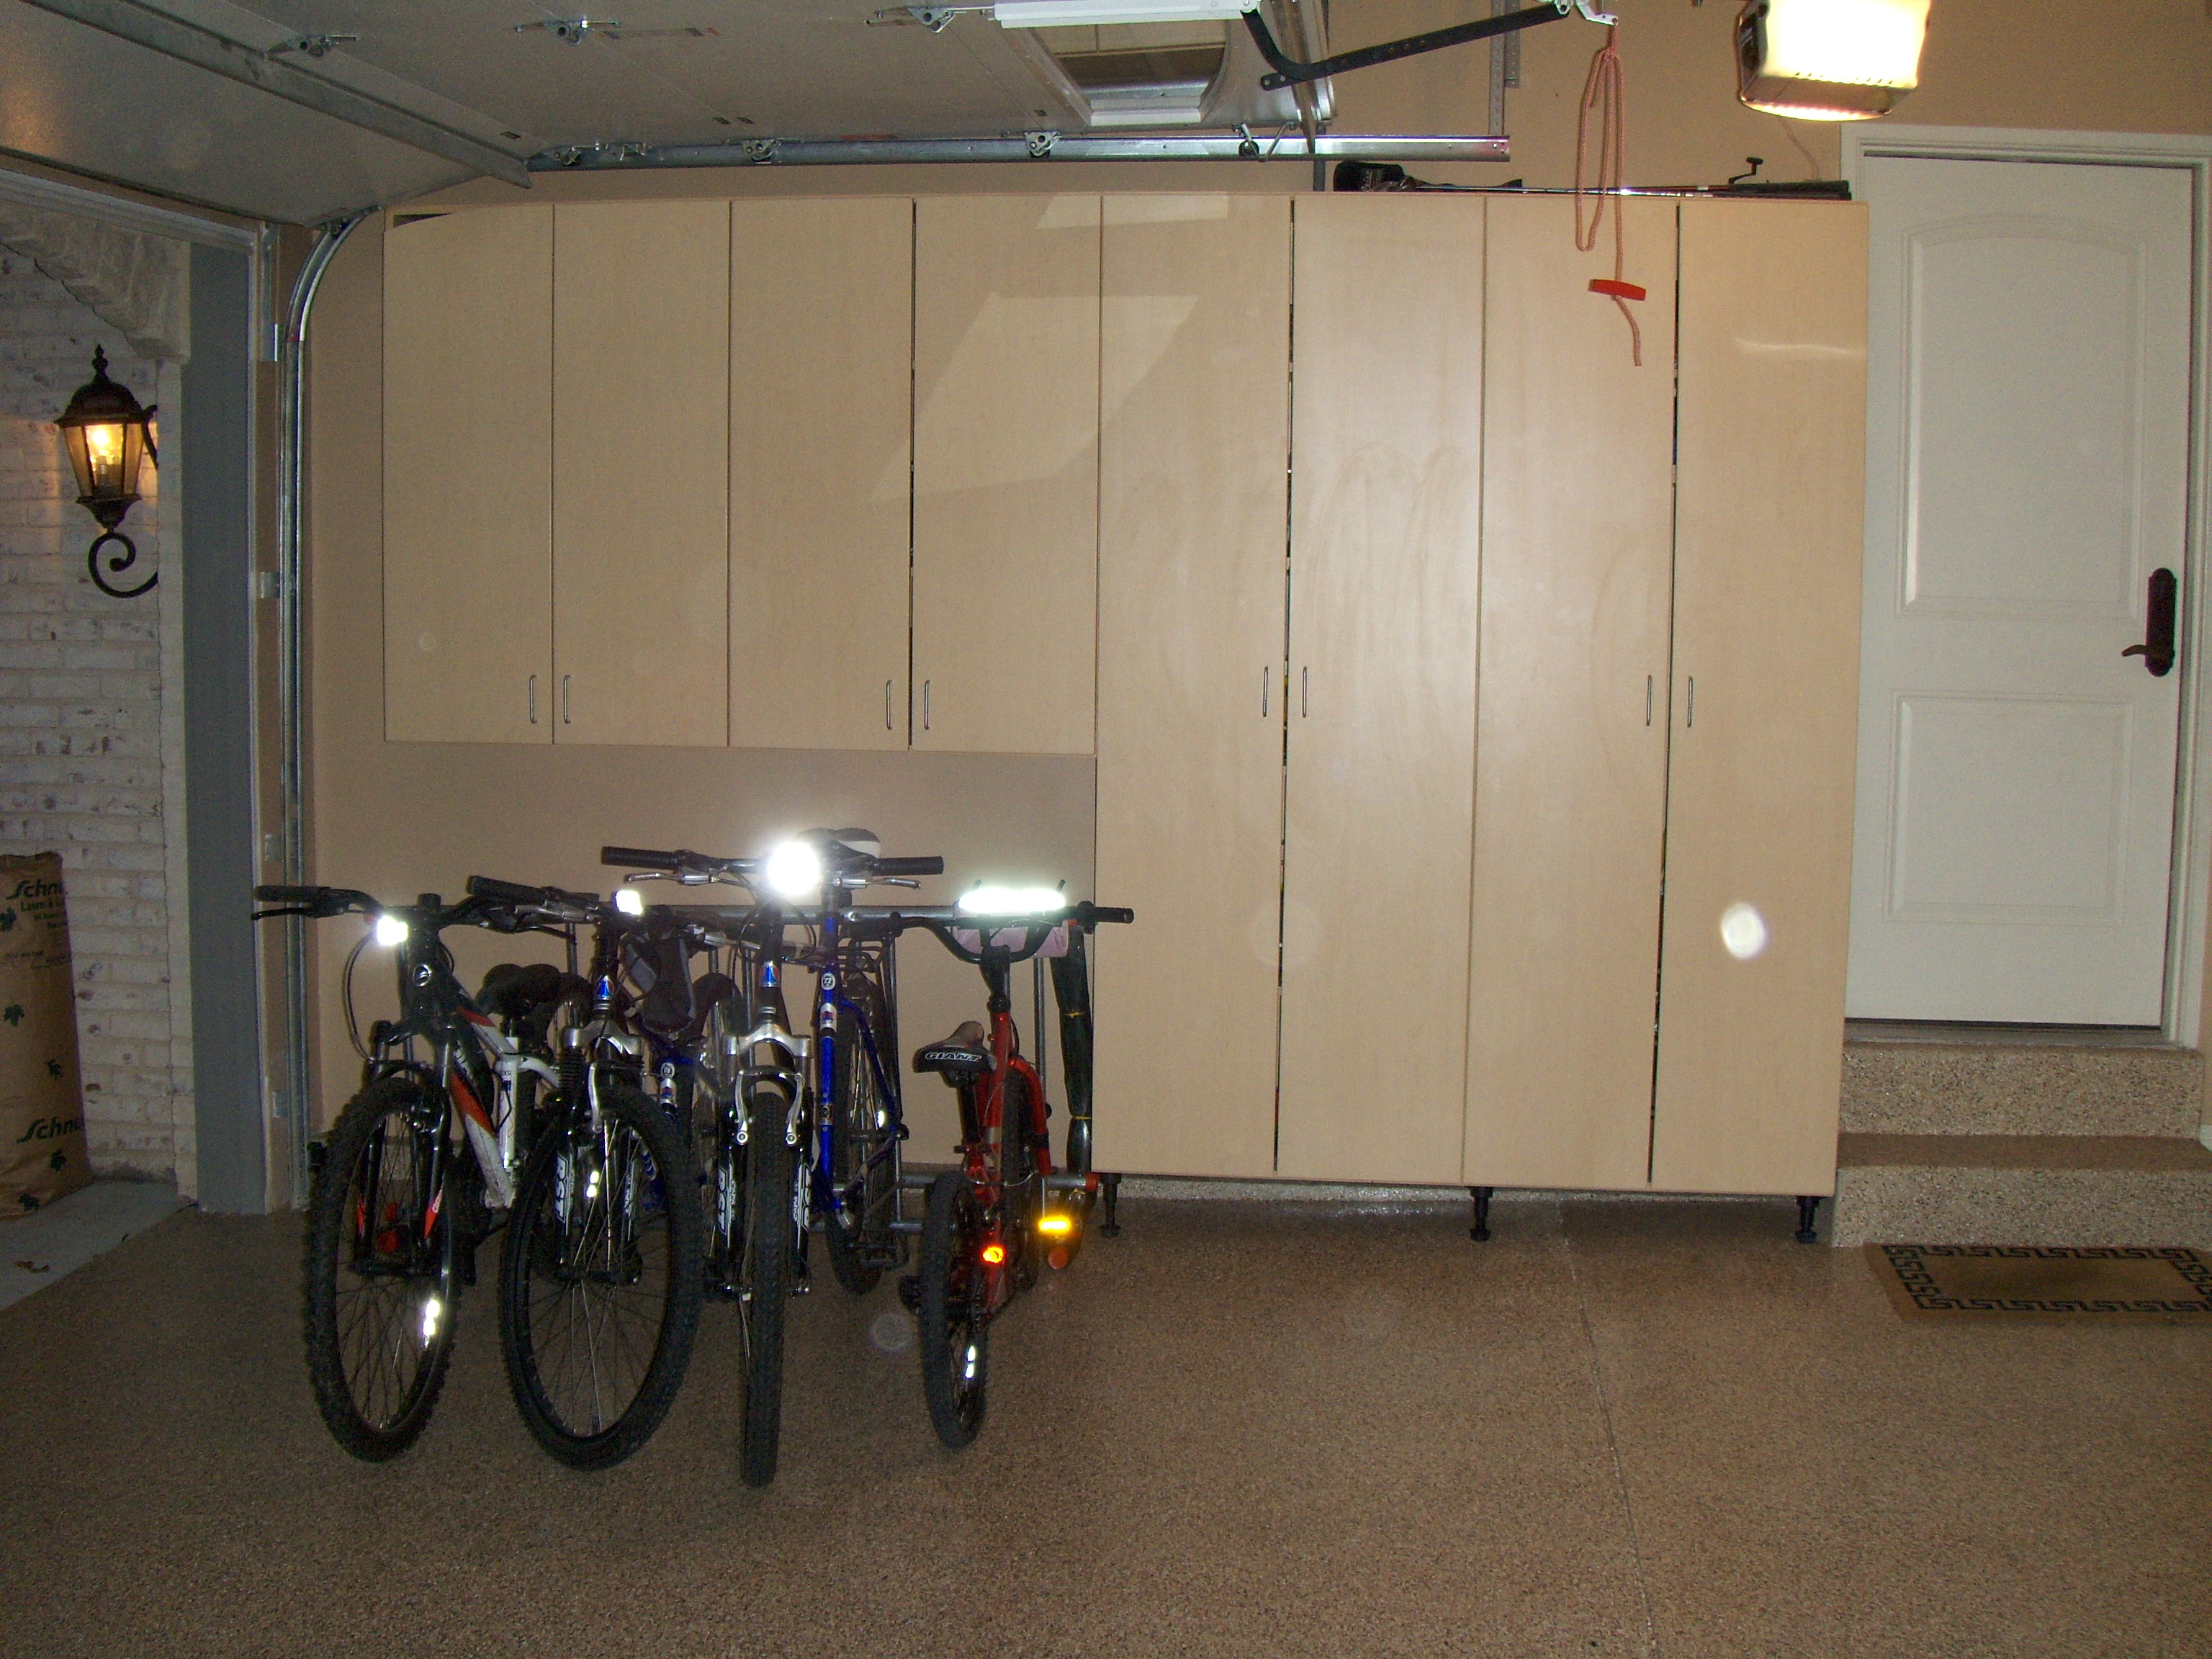 Garage Designs Of St Louis: 3 Zones For Storing Bicycles In Your Garage